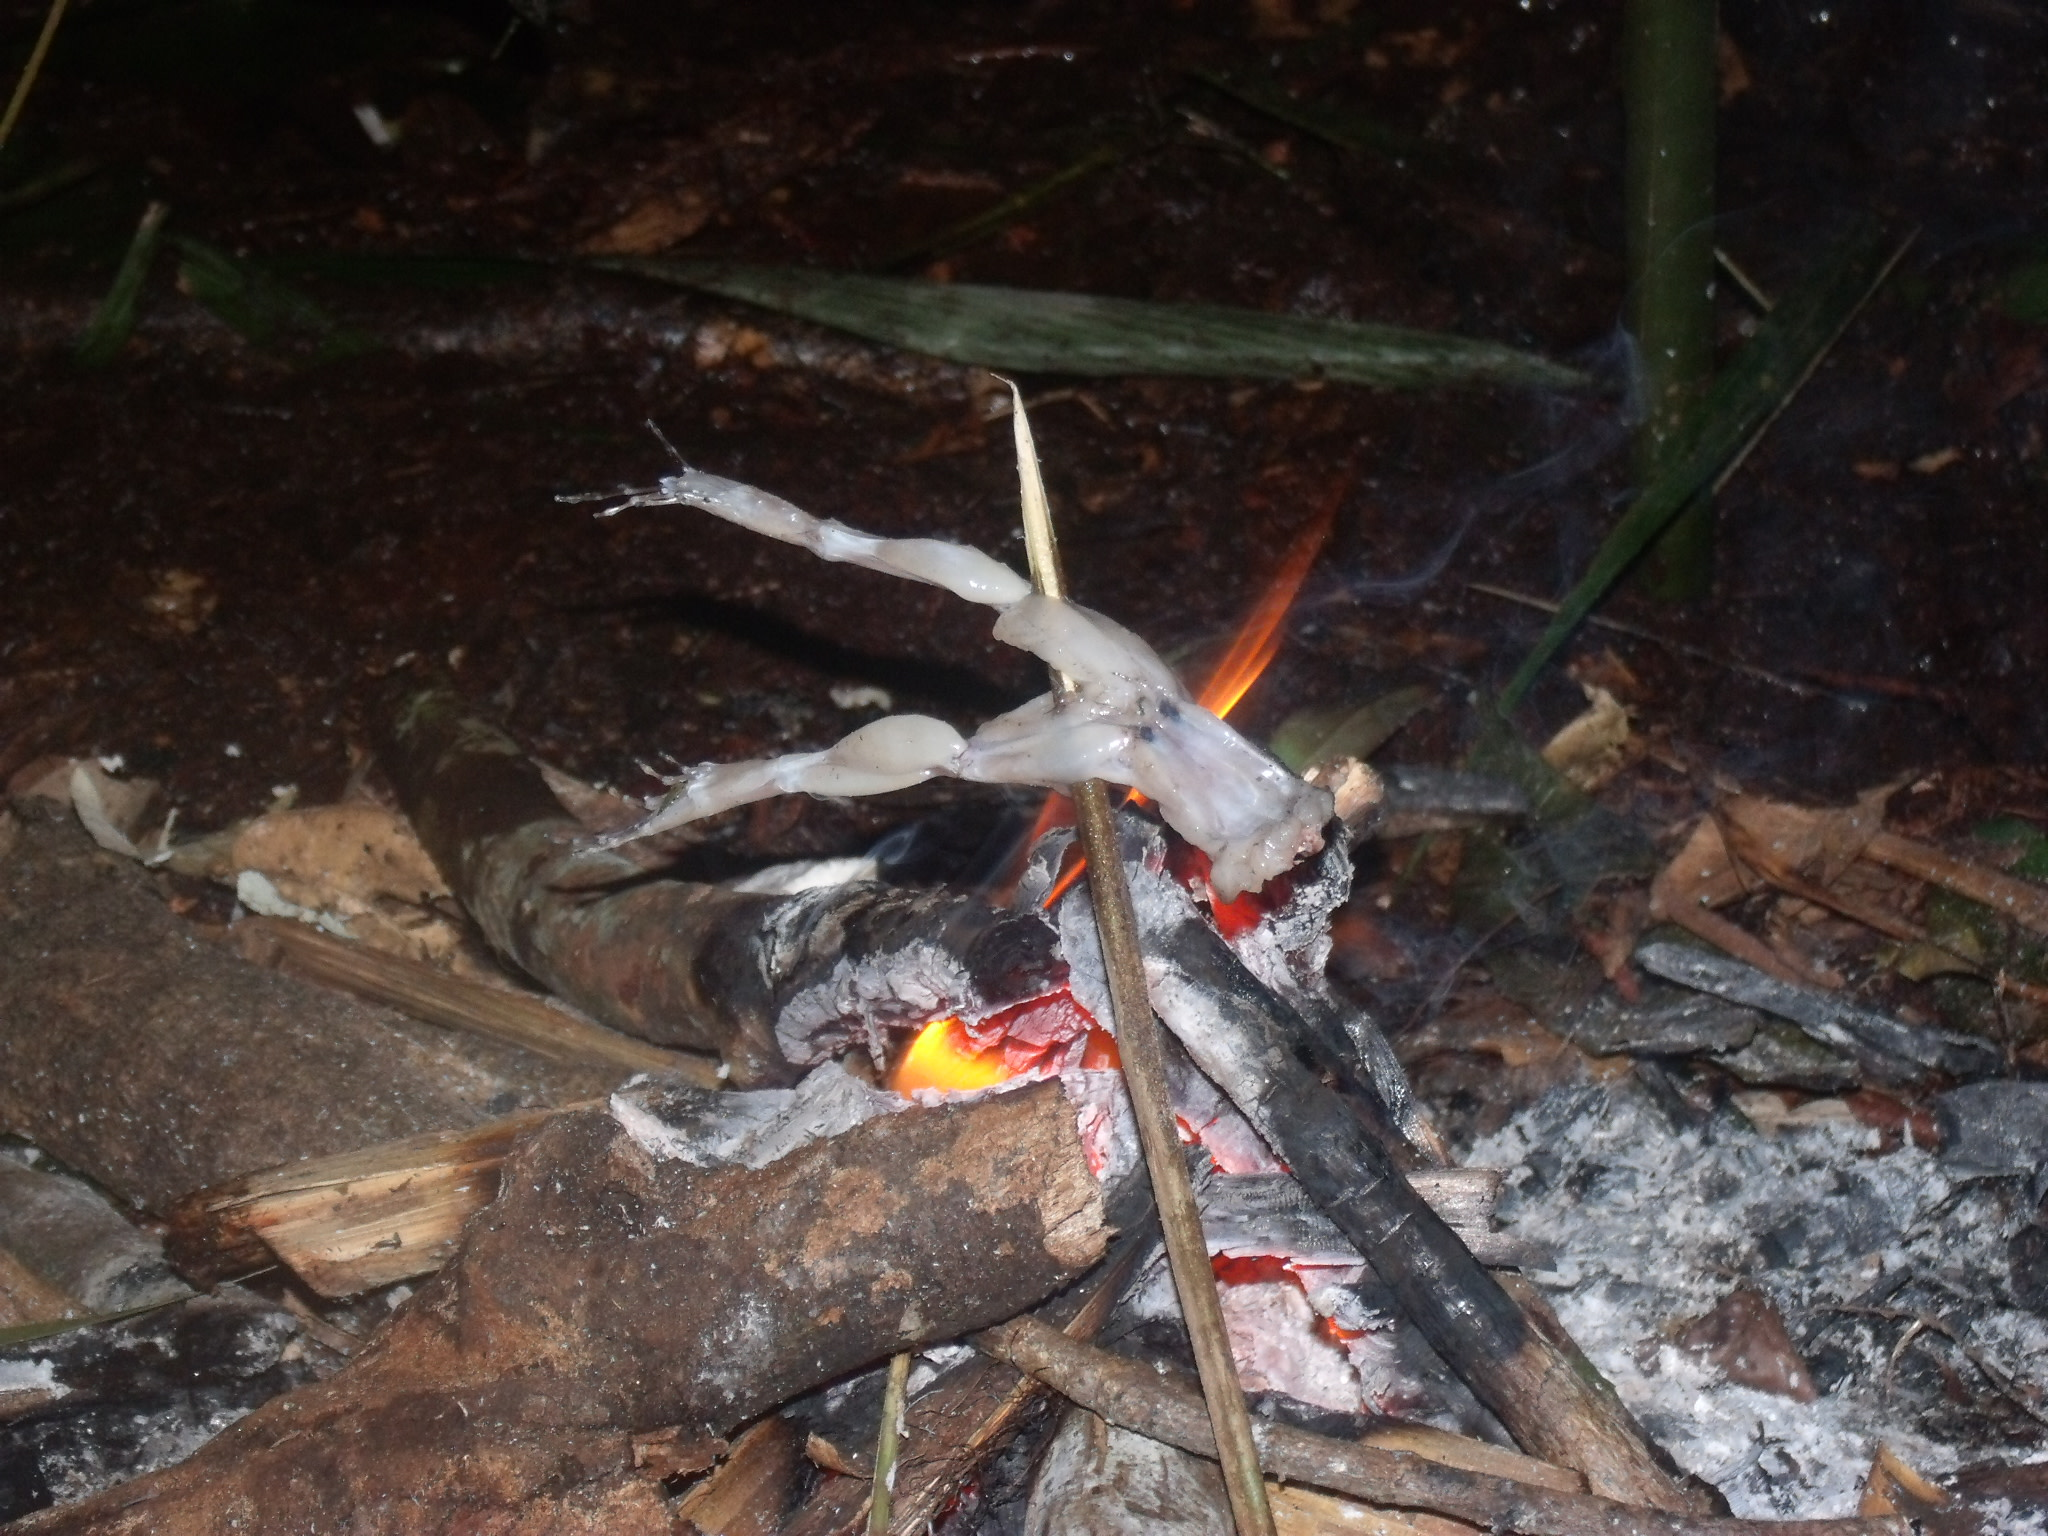 Roasting a frog for food in the jungle.